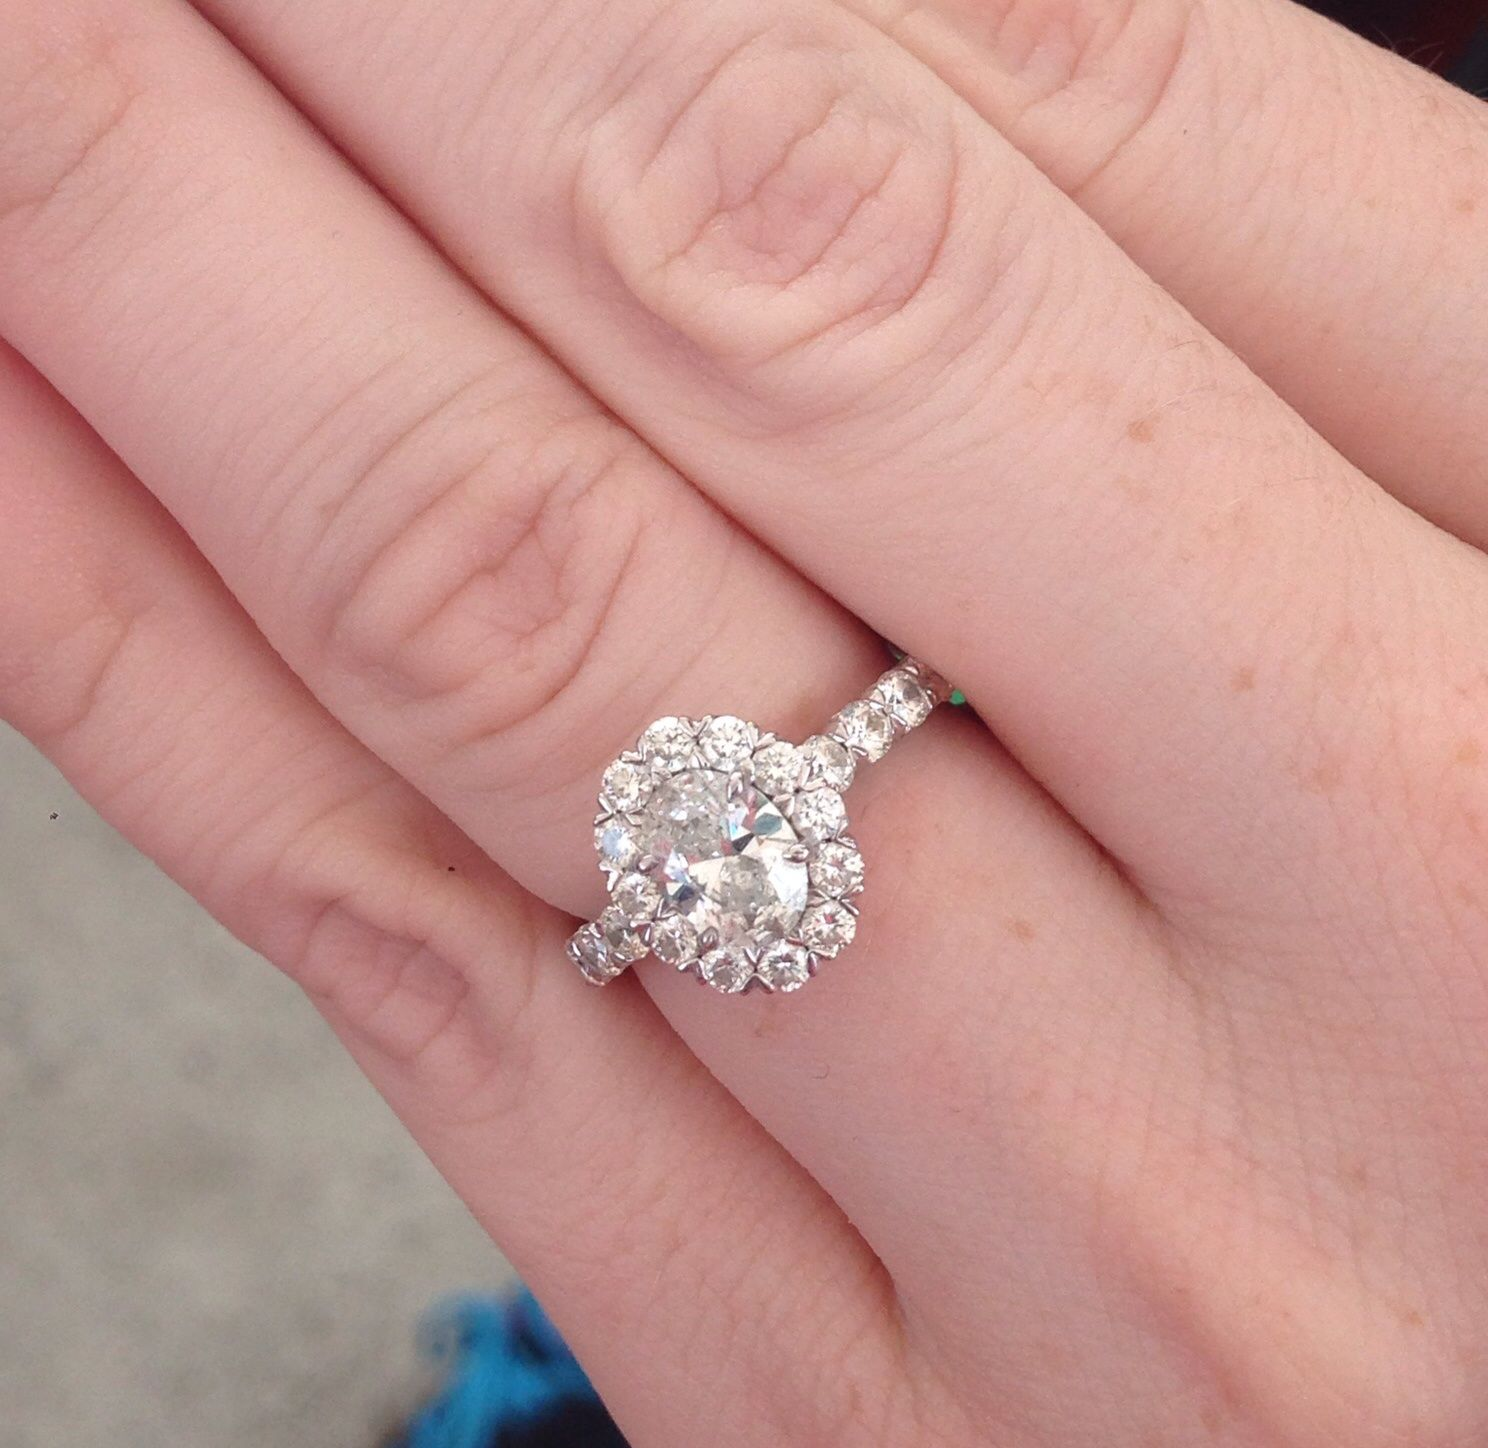 Christopher Designs Oval Halo Engagement Ring | Weddingbee Photo ...